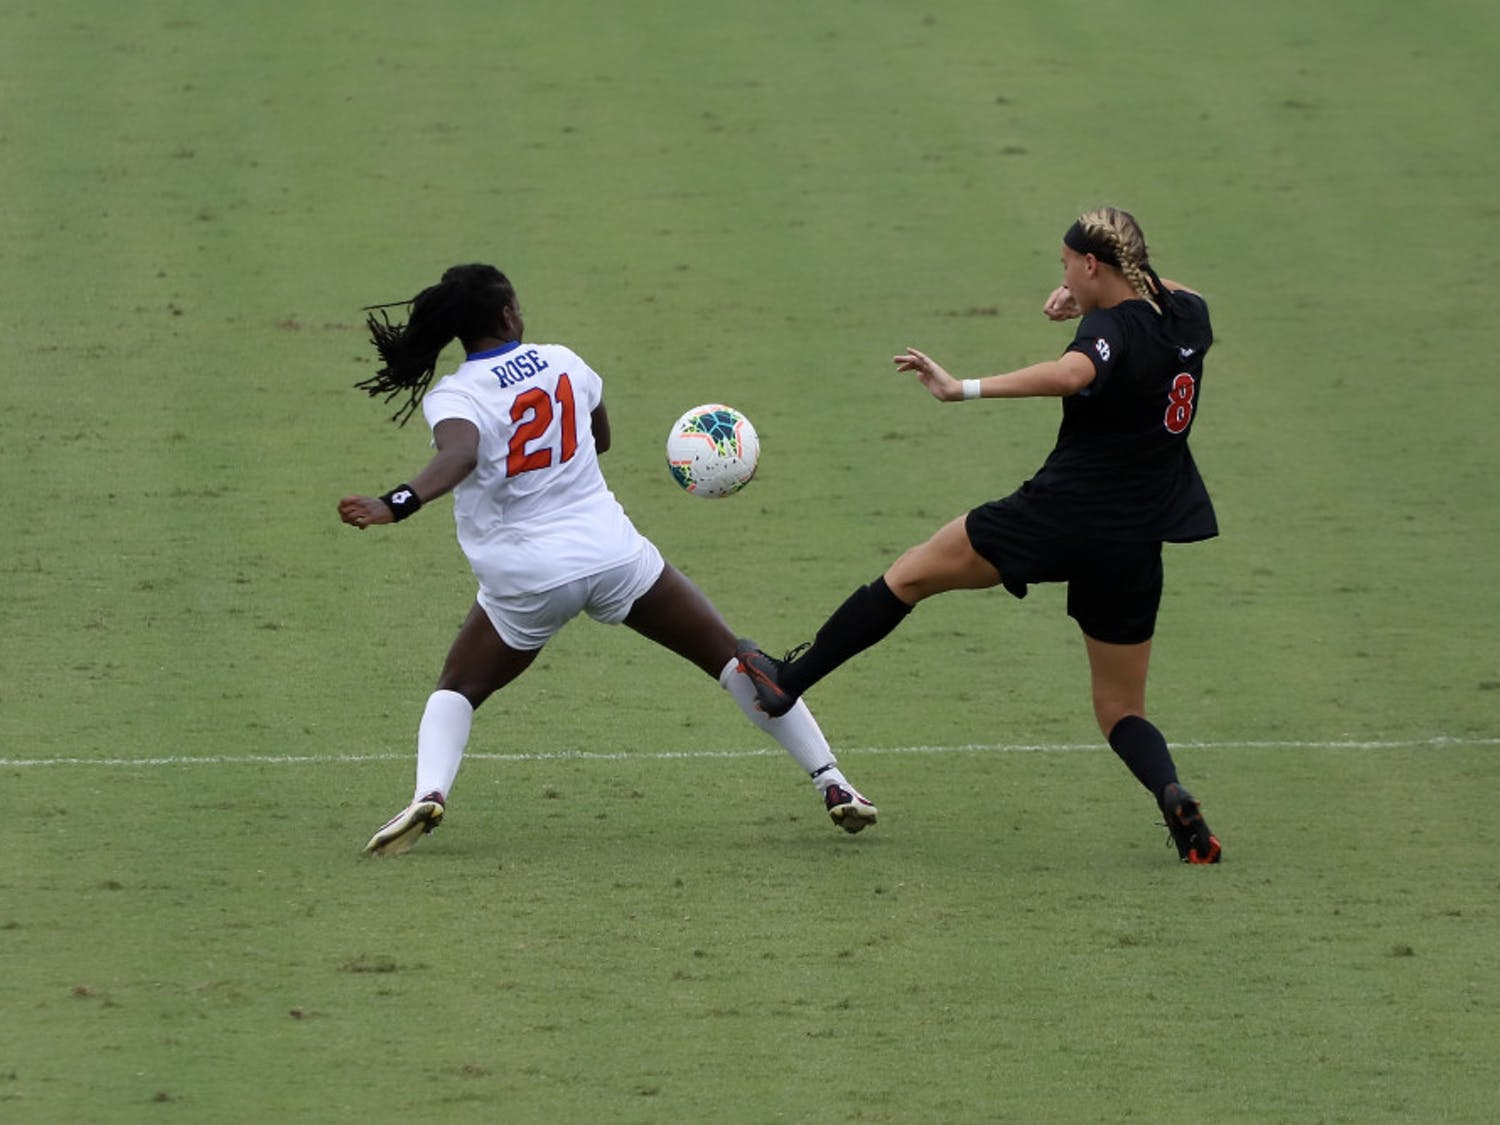 Forward Deanne Rose fights for a ball at Florida's game against Georgia earlier this season. The senior's return will be a key factor in the Gators' game against South Carolina Sunday.